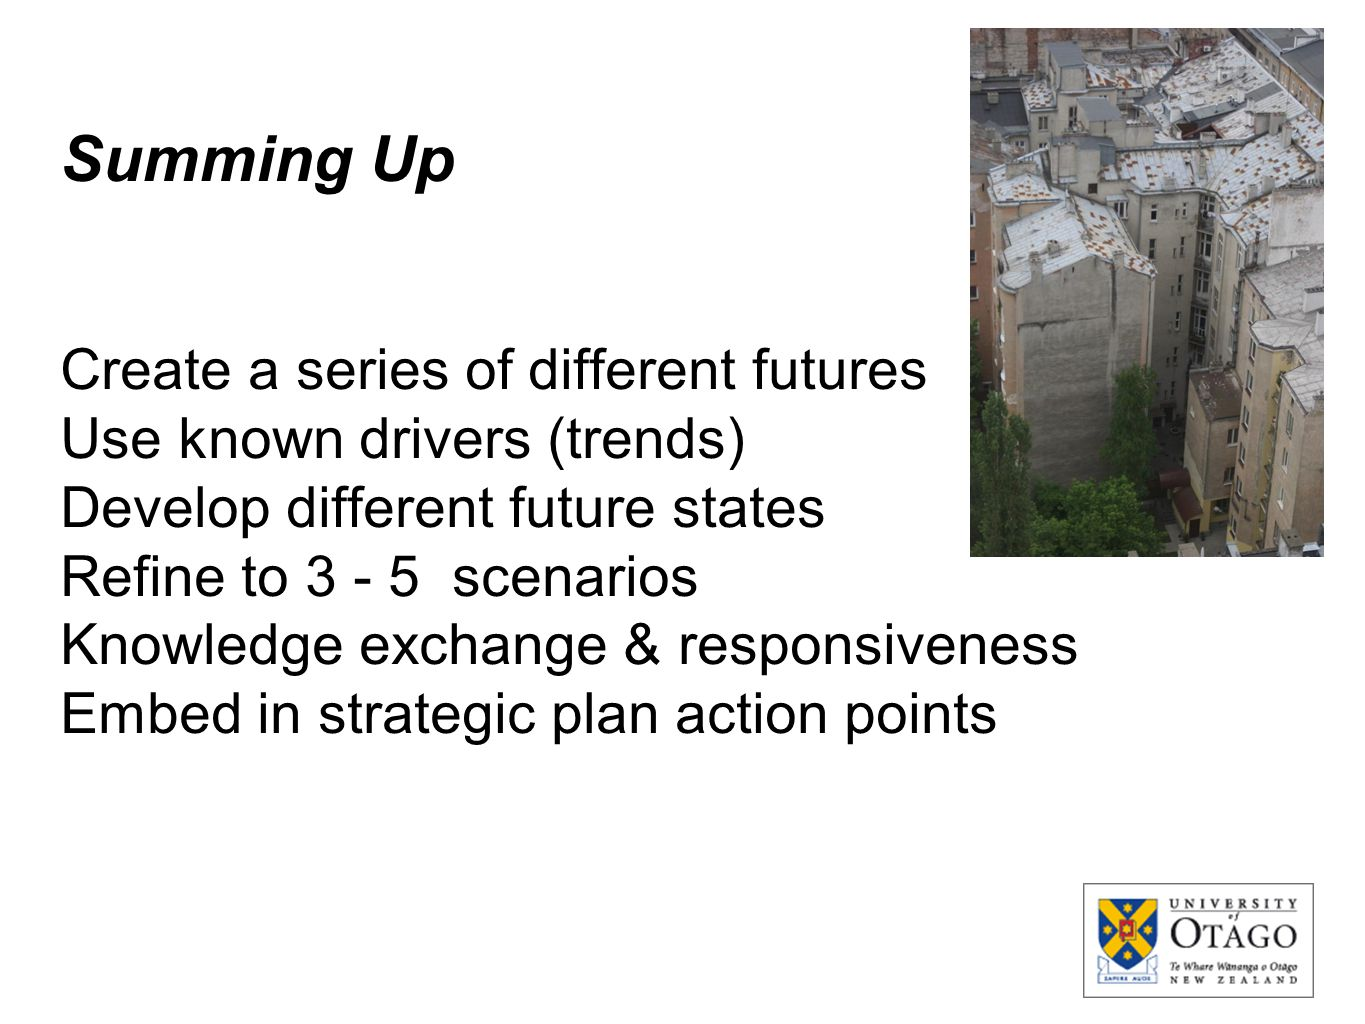 Summing Up Create a series of different futures Use known drivers (trends) Develop different future states Refine to 3 - 5 scenarios Knowledge exchang